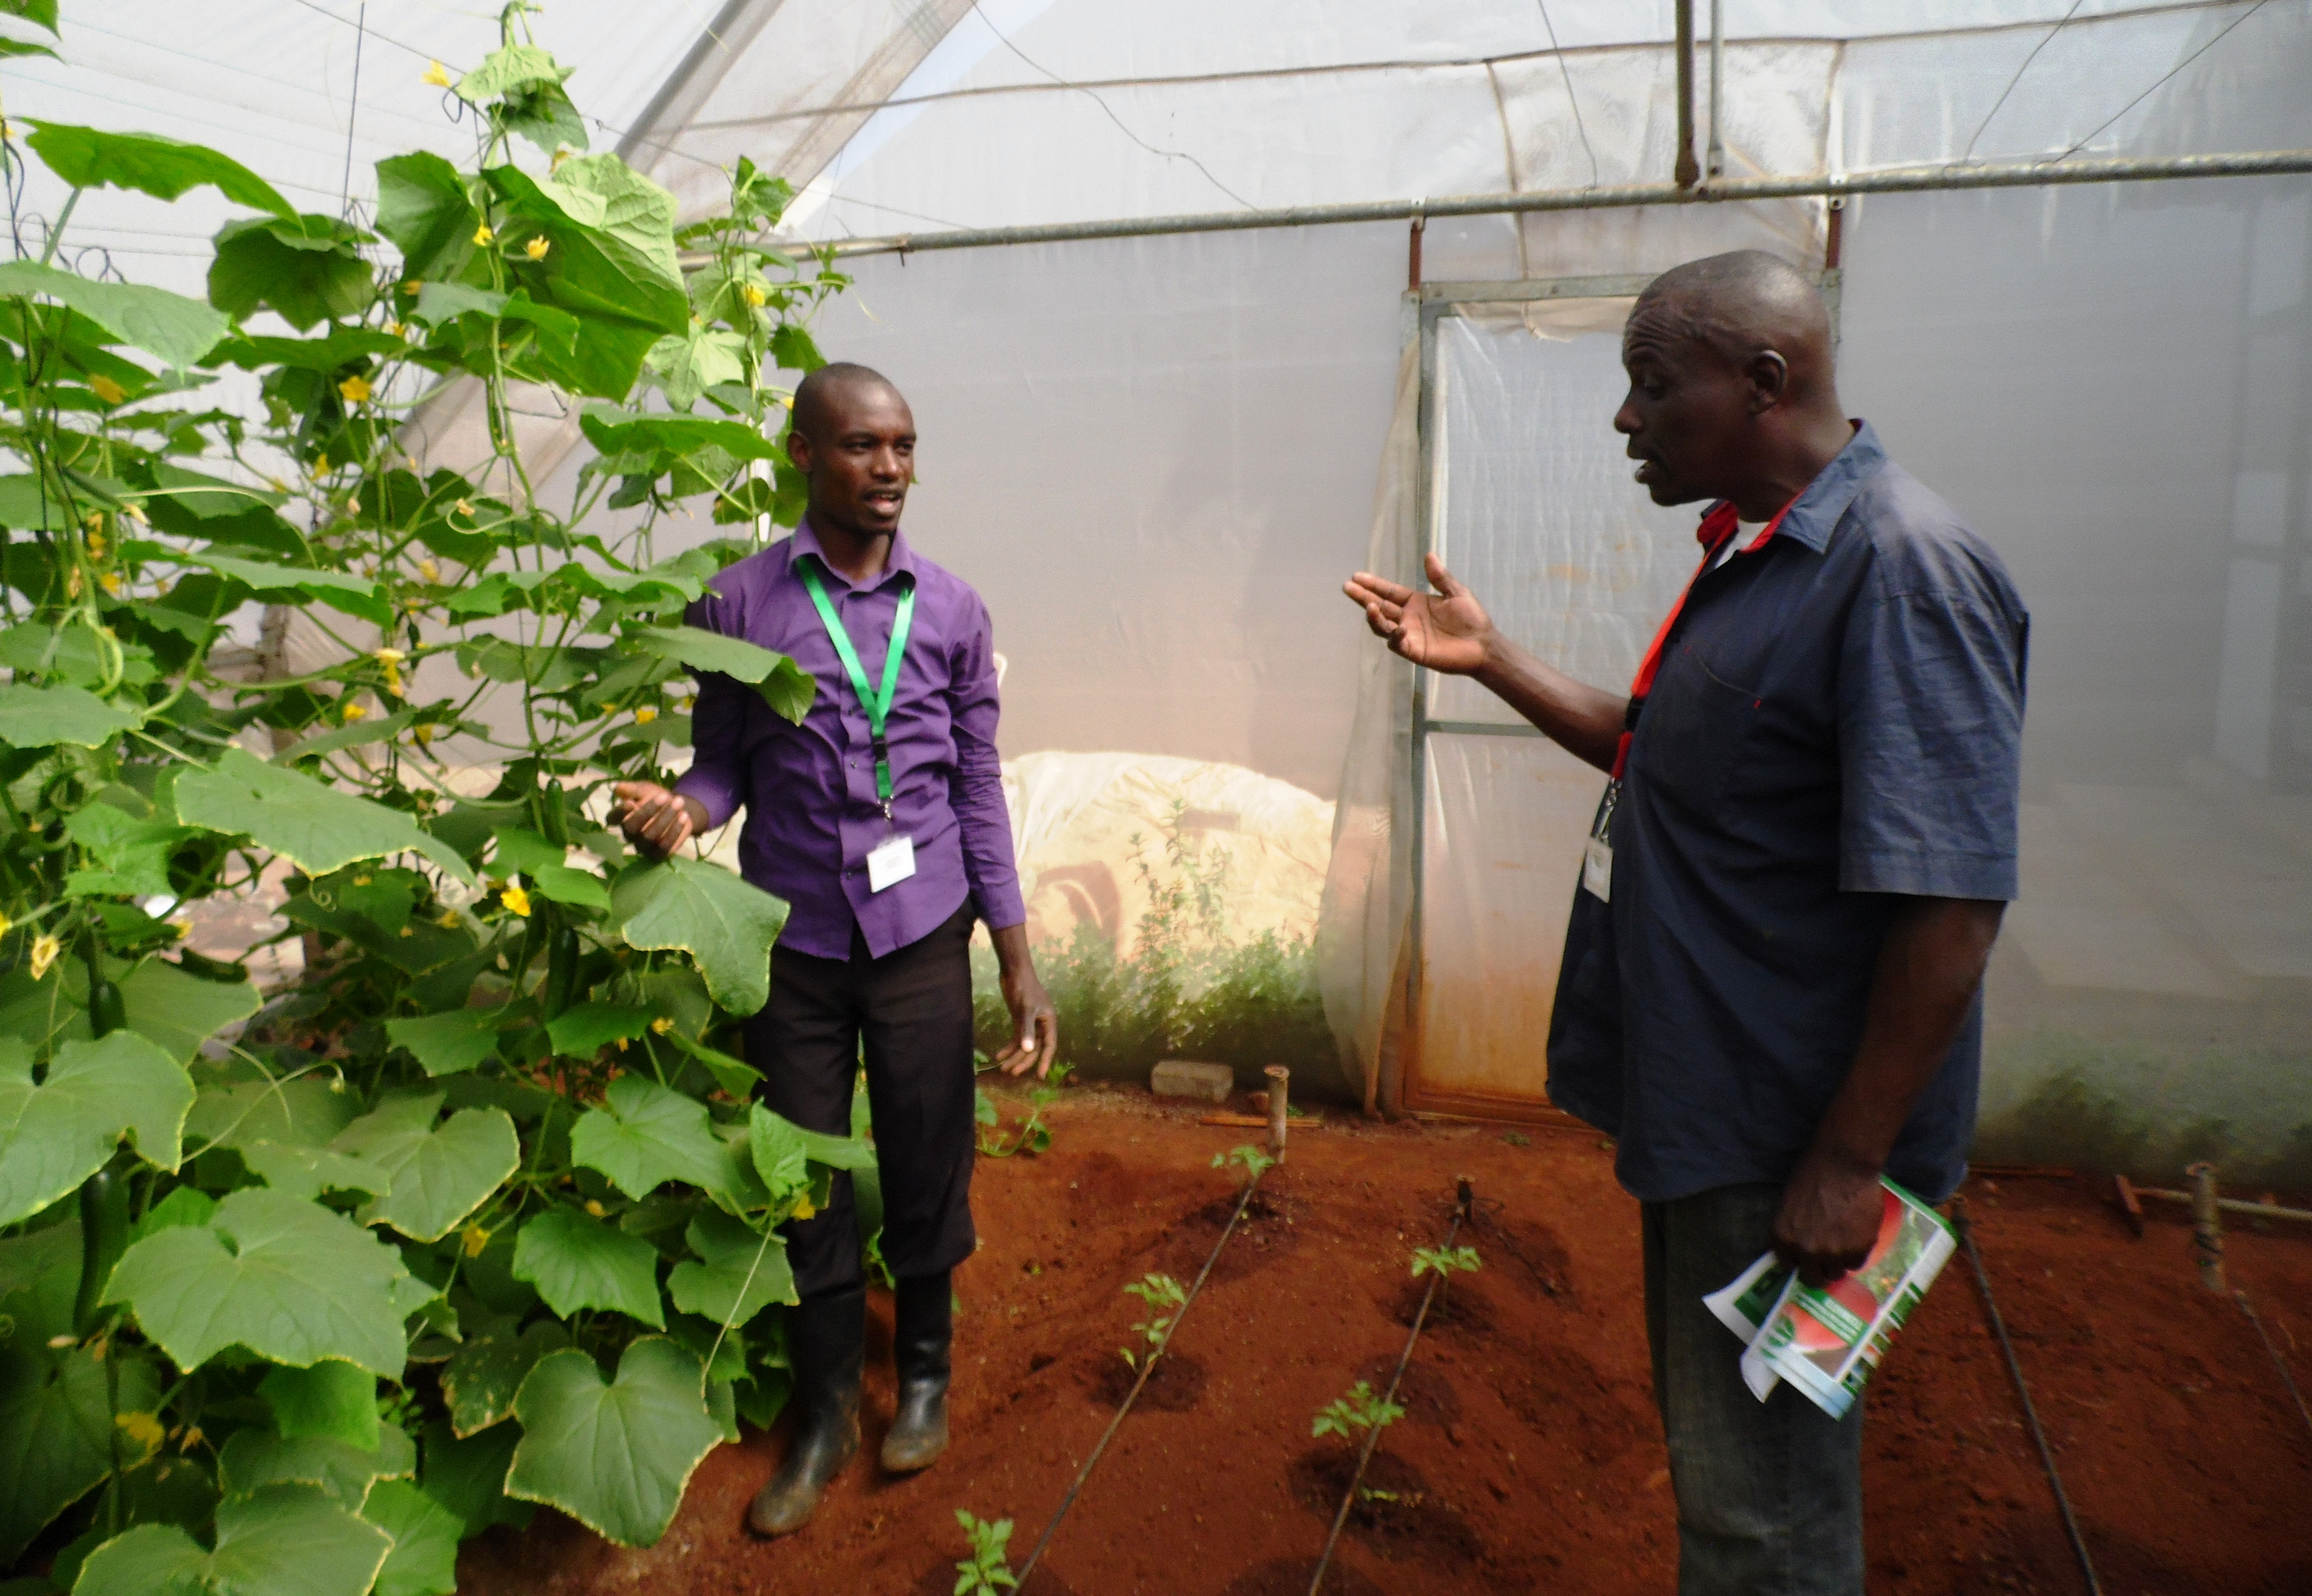 Agronomist Wycliffe Obwoge answering Gabriel Njoroge on how to raise cucumbers. Accidental tomato growing saved the farmer from Sh300,000 poultry loss. PHOTO: LABAN ROBERT.